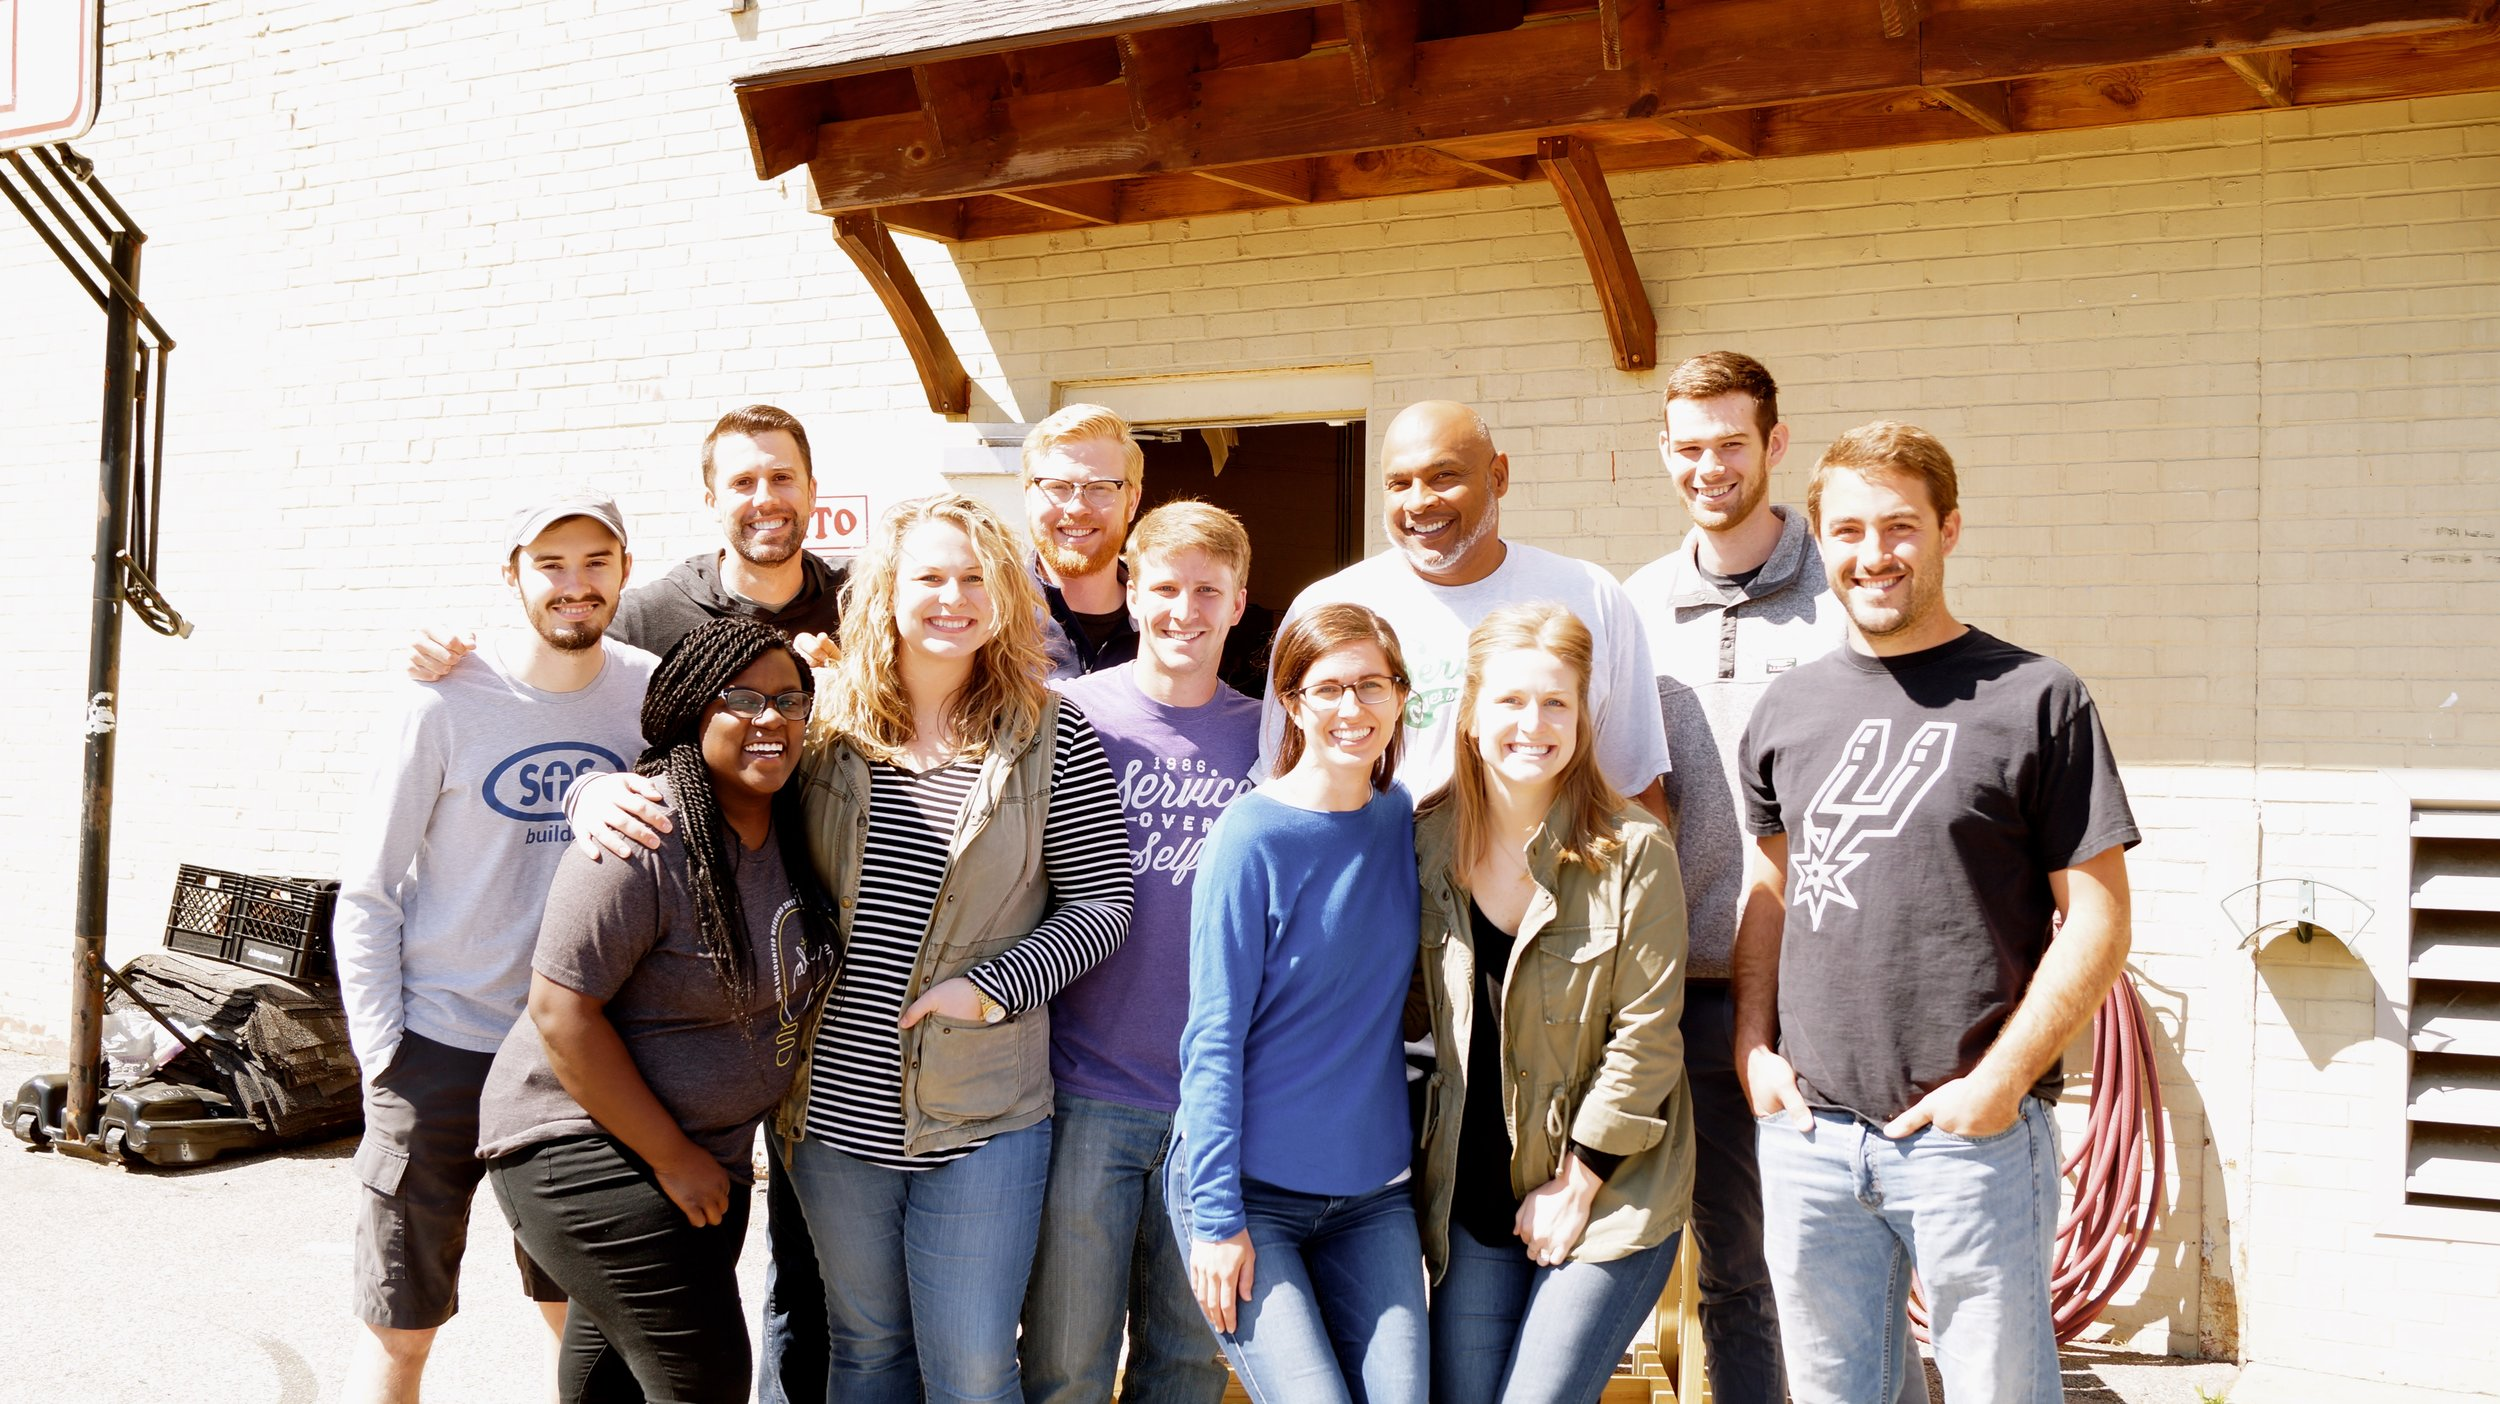 Full-Time Staff - Our team of ten full-time staff members call SOS home year-round. Between camp construction and programming, registration and SOS Builds, this is the team that's got it covered!Meet our team